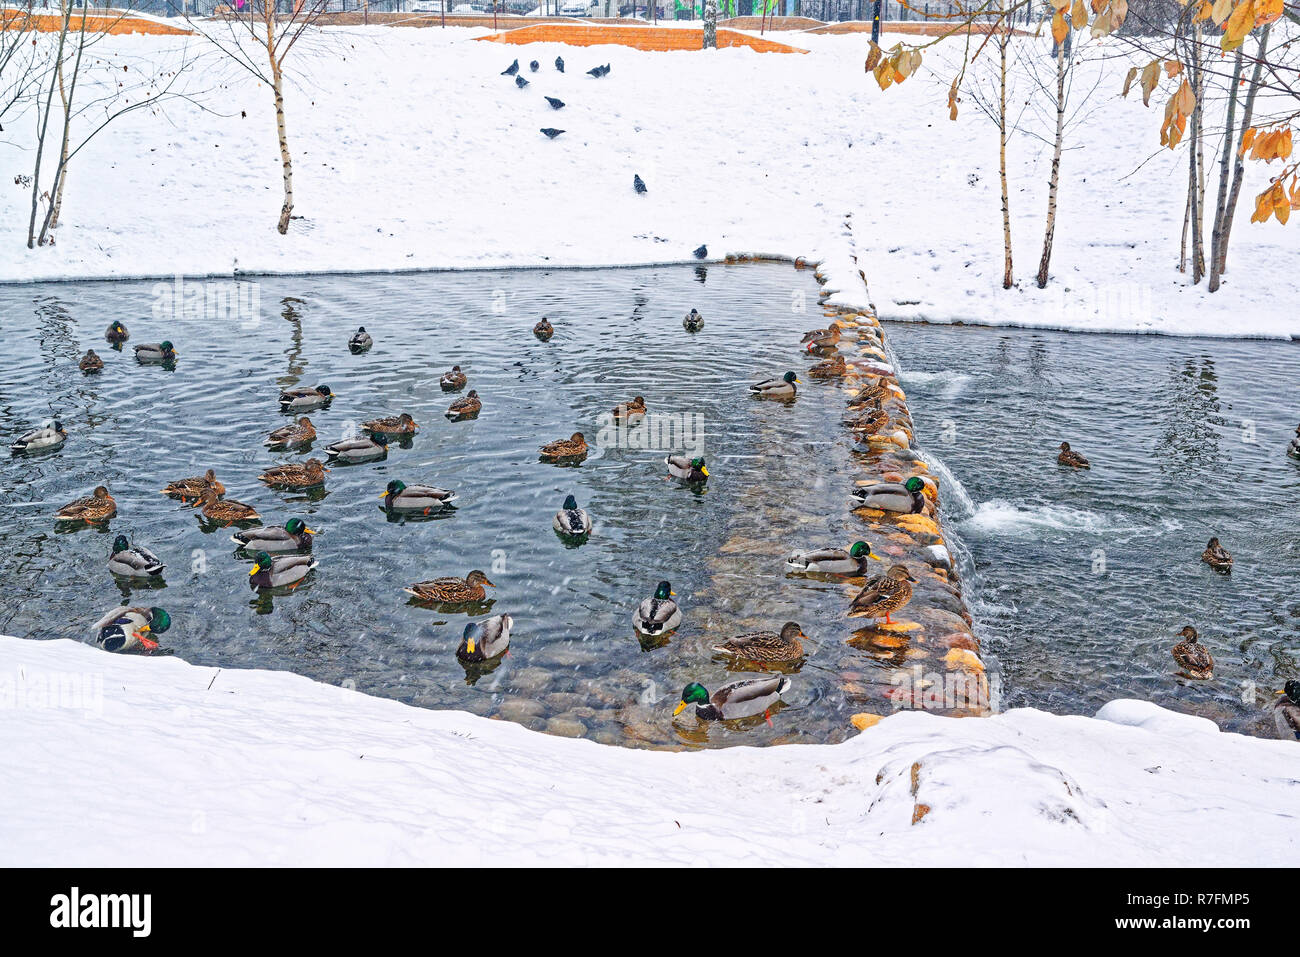 A beautiful city park on the outskirts of the city with a lake, river and birches. Winter, gloomy sky and heavy snow. Ducks hibernate in an unfrozen s - Stock Image